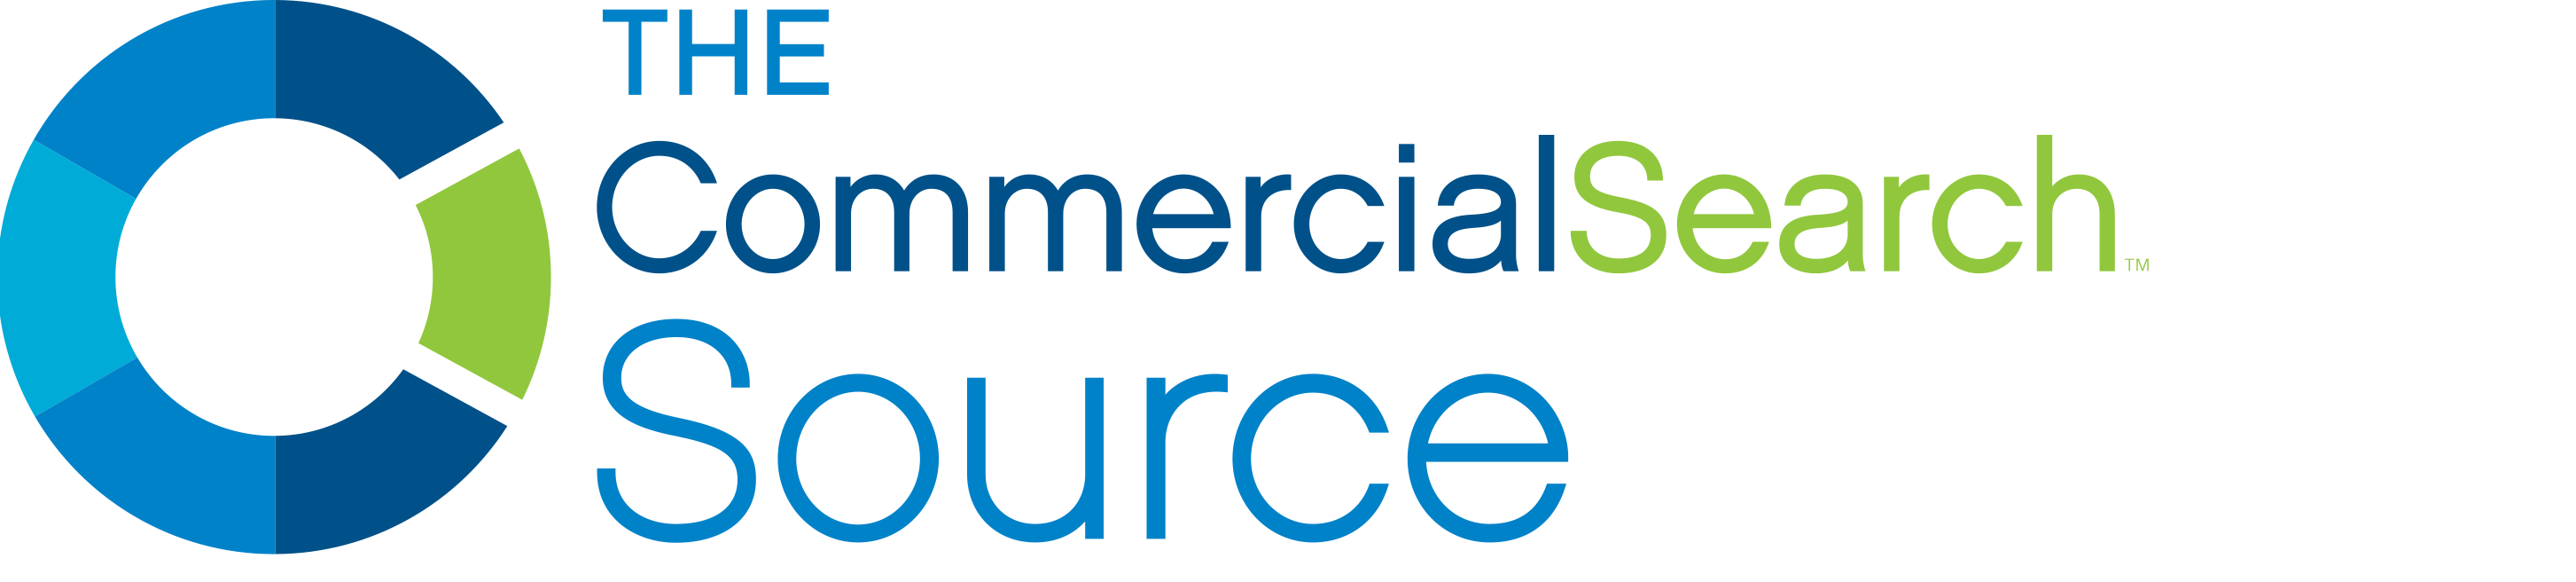 The commercial search source